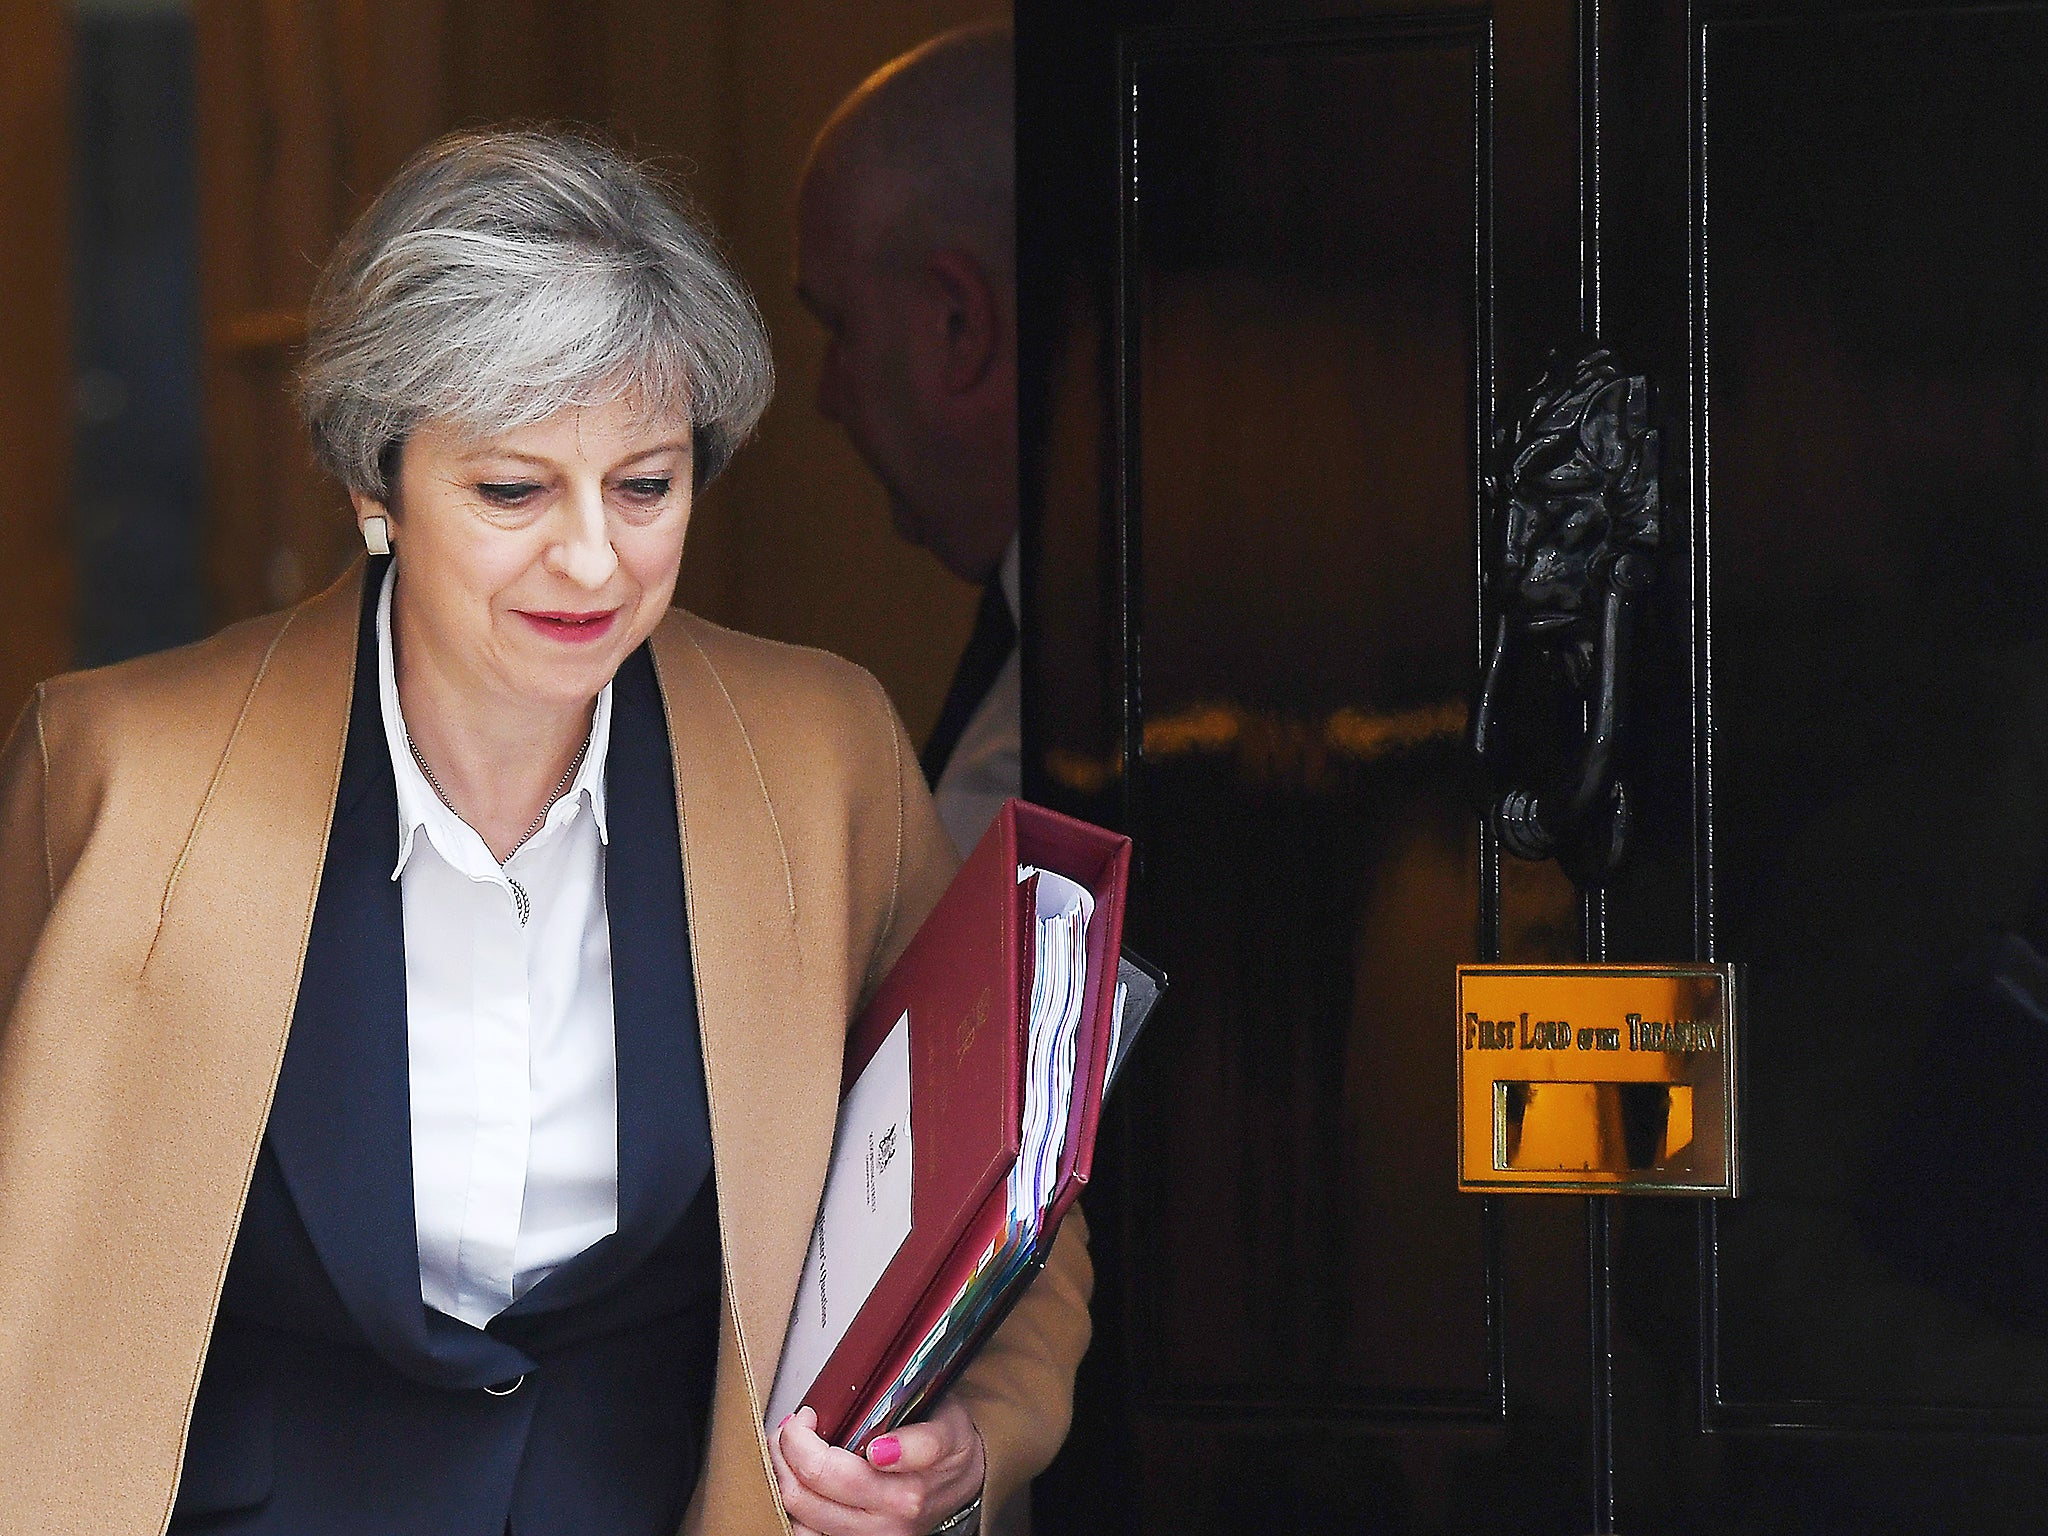 Read Theresa May's full statement on Brexit and triggering Article 50